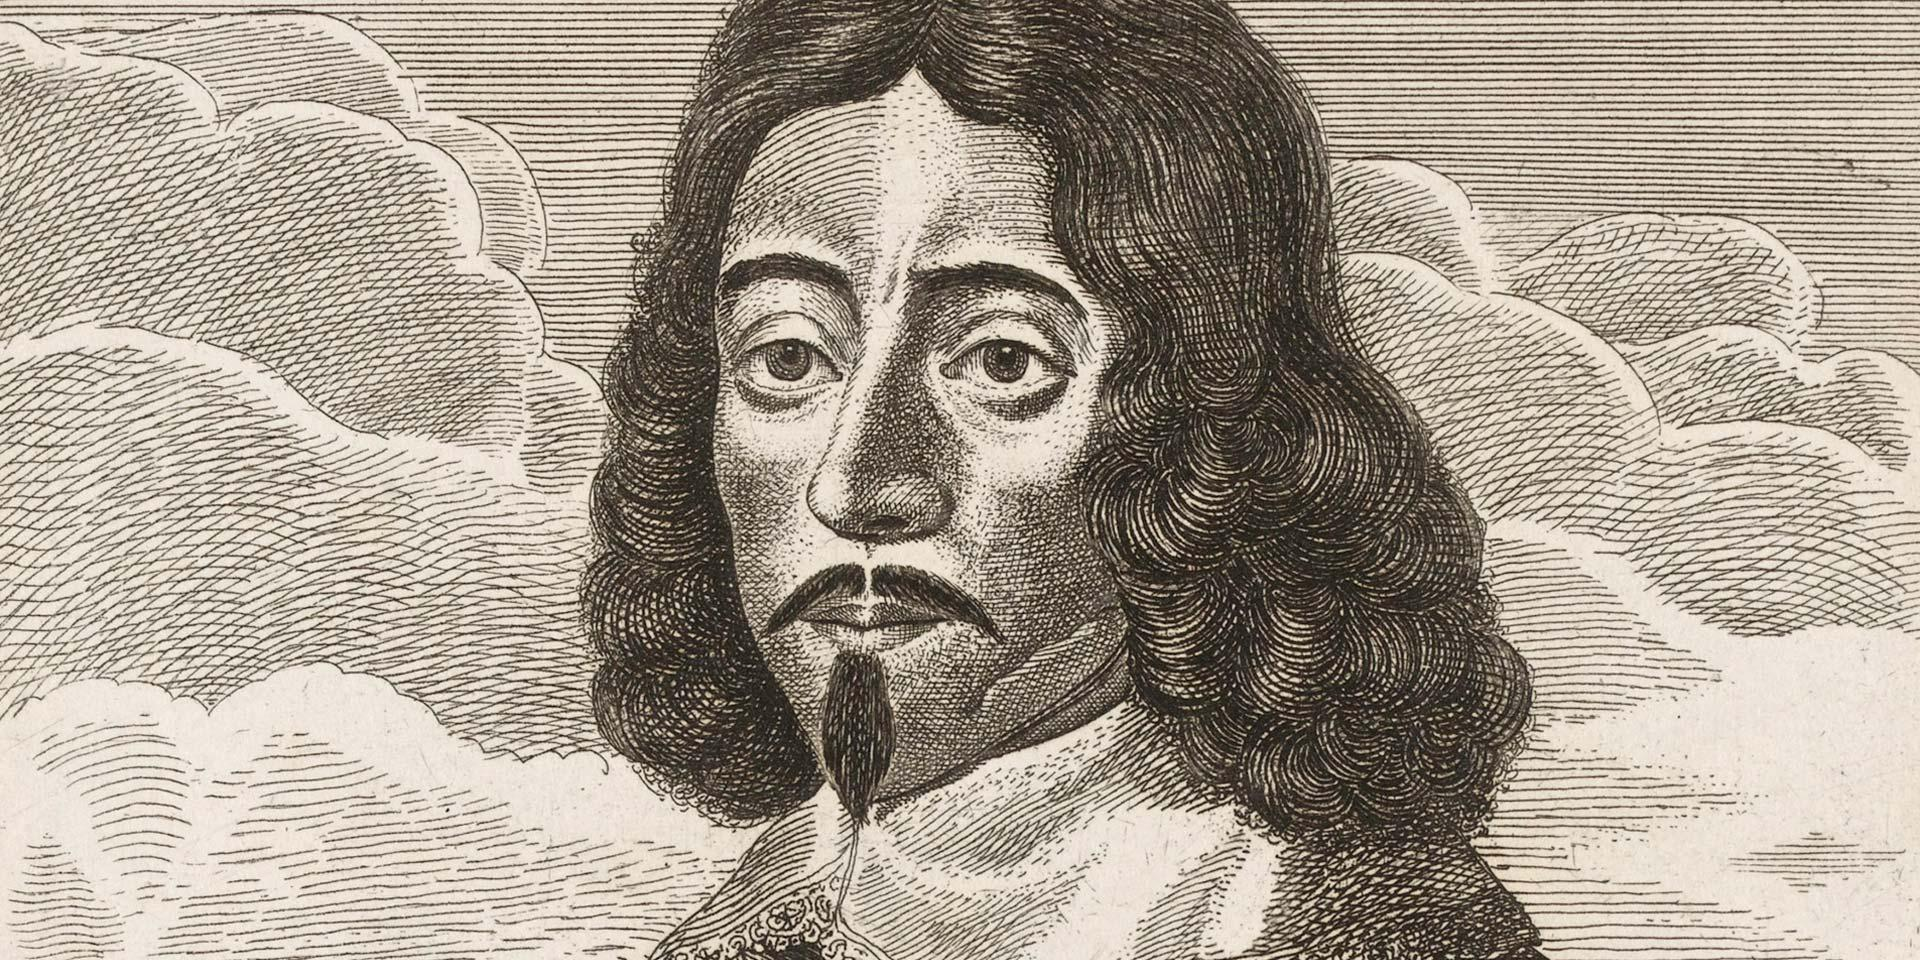 Lord Fairfax, General of the forces raised by the Parliament, c1650